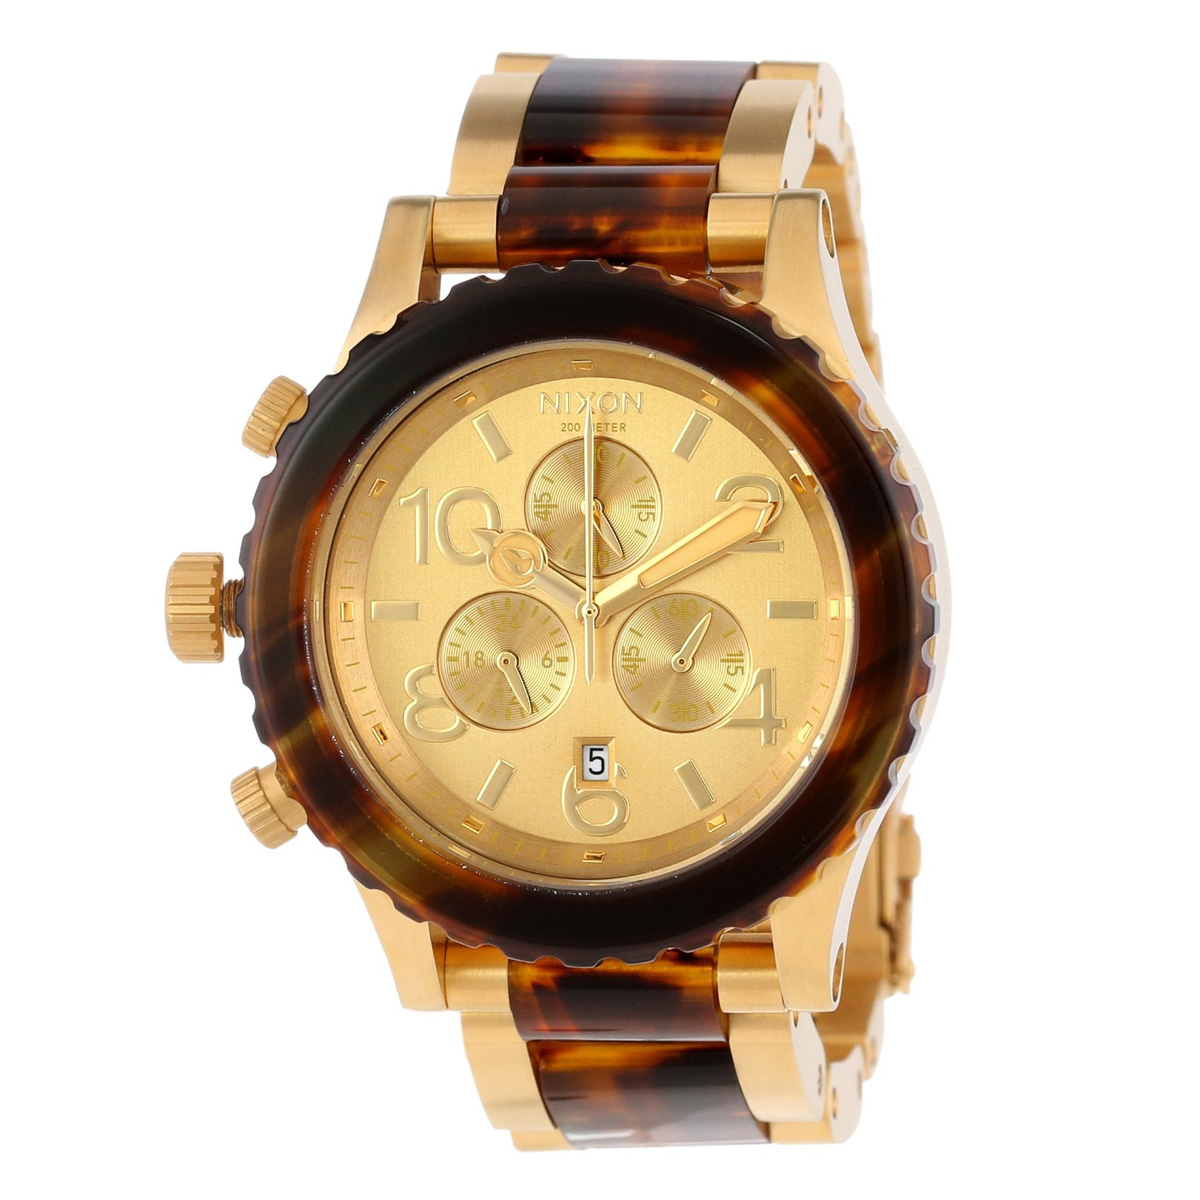 นาฬิกา ชาย-หญิง Nixon รุ่น A037-1424, Unisex Watch 42-20 Chrono Gold tone and Tortoise Quartz Analog